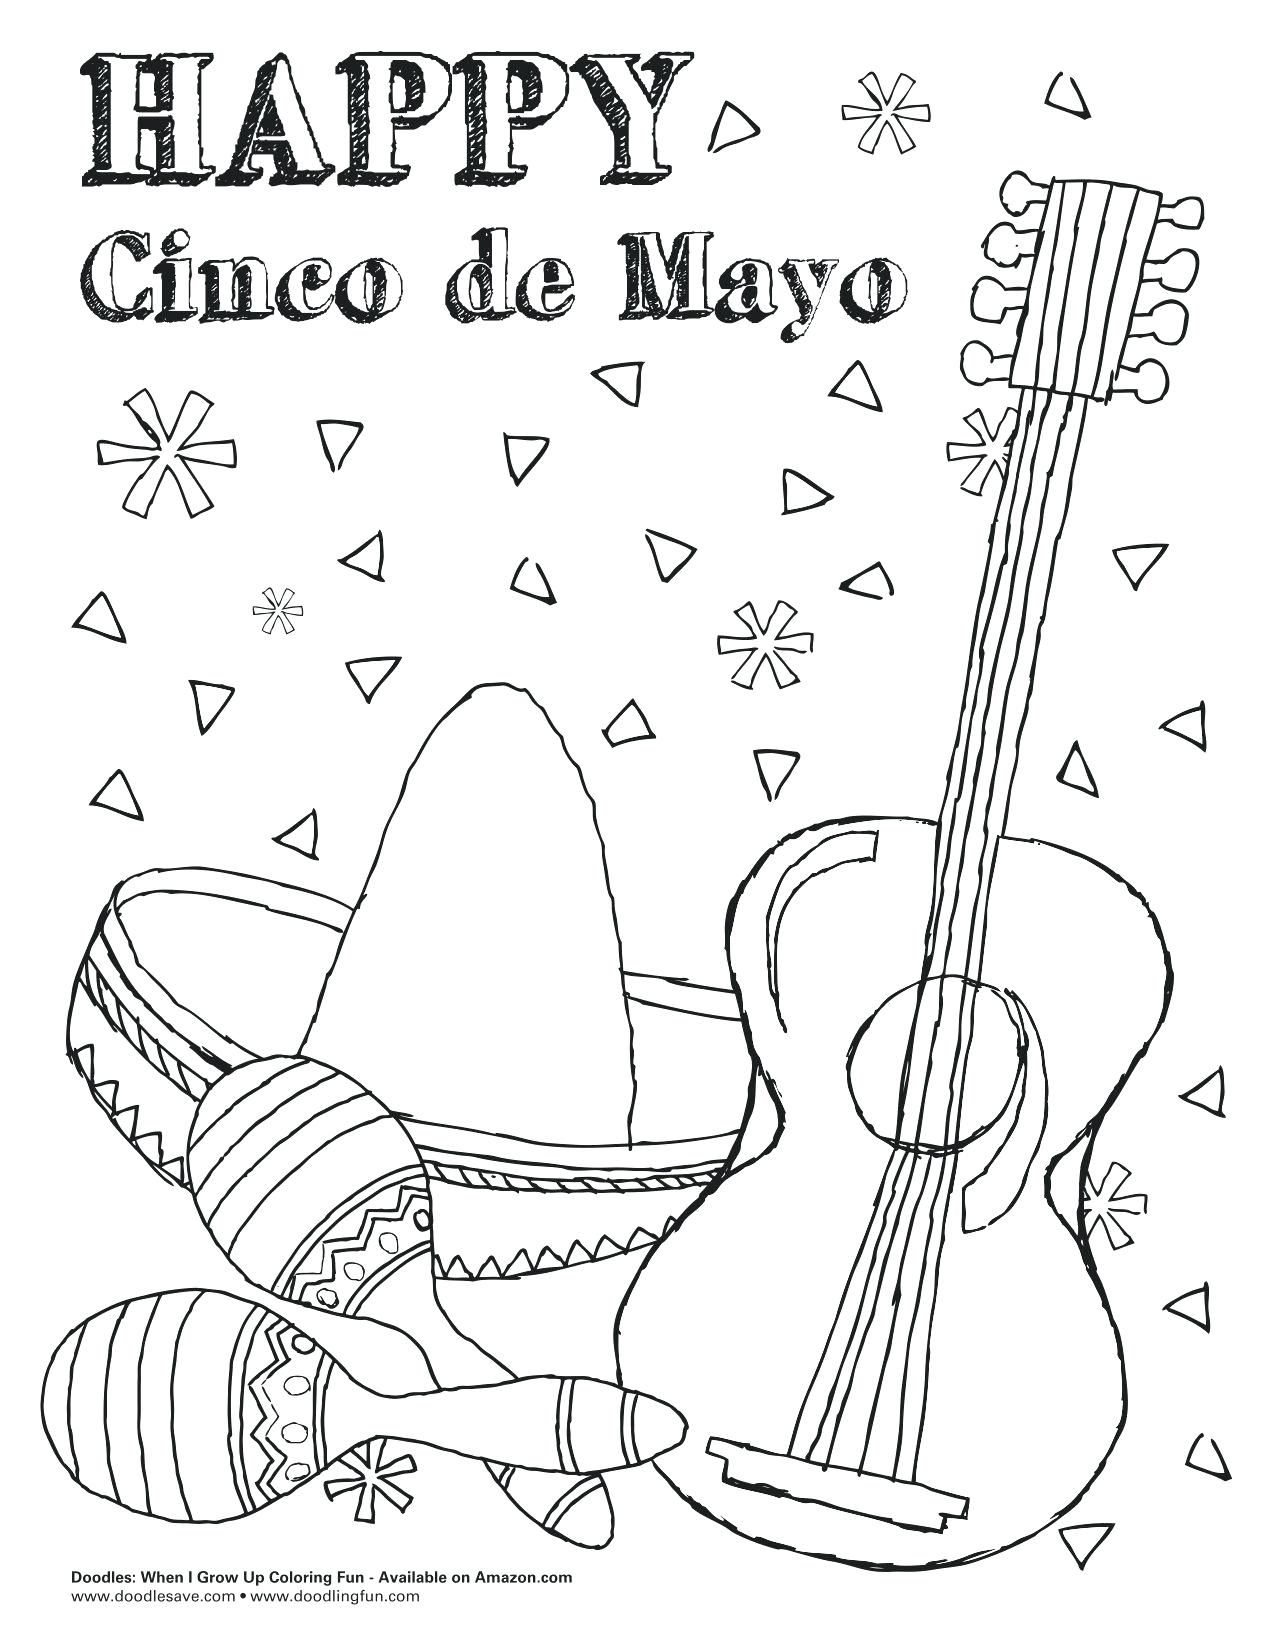 Cinco De Mayo Coloring Pages Coloring Pages Cinco Mayo Coloring Sheets Printable Tulippaper Pages Large Images Mexican For Adults